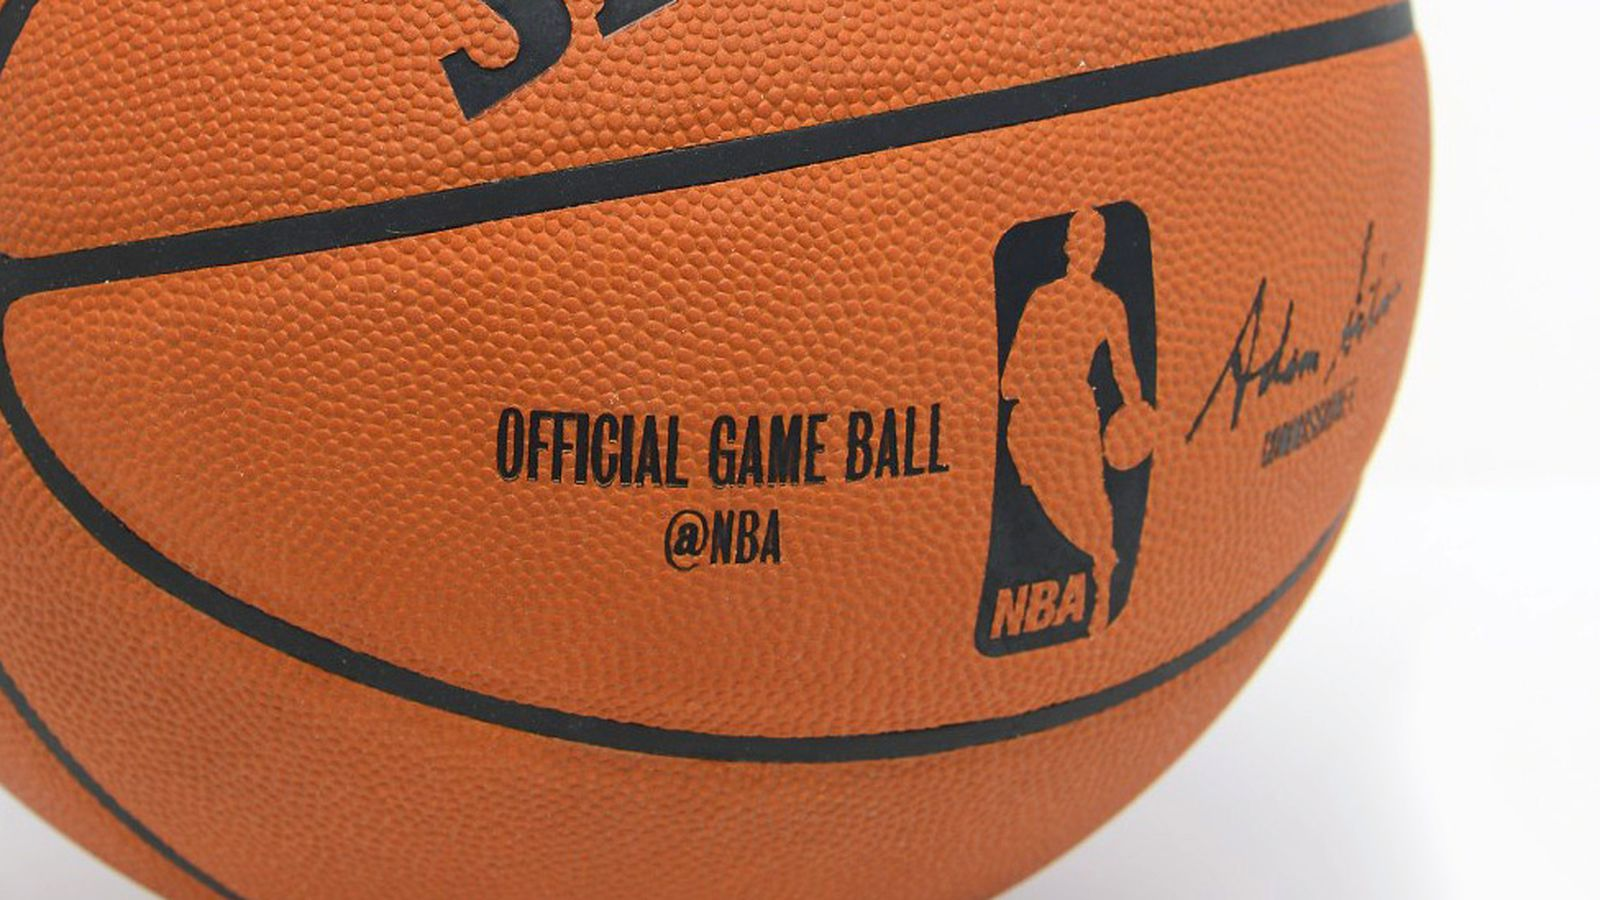 Twitter should bring an NBA basketball to its next ...